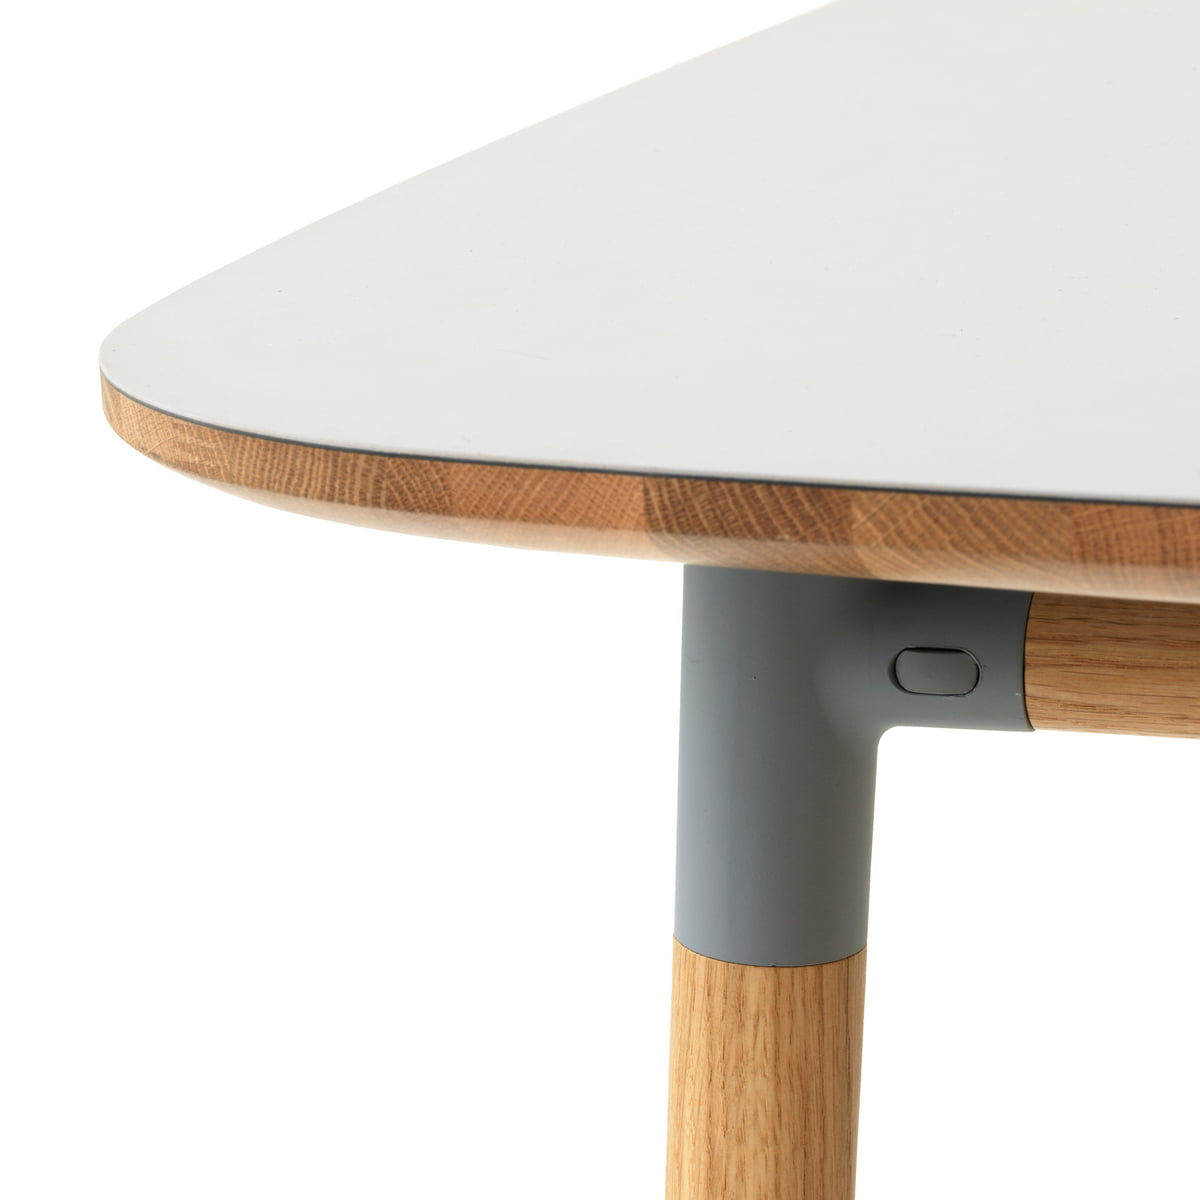 Form table by normann copenhagen at the shop for Html form table